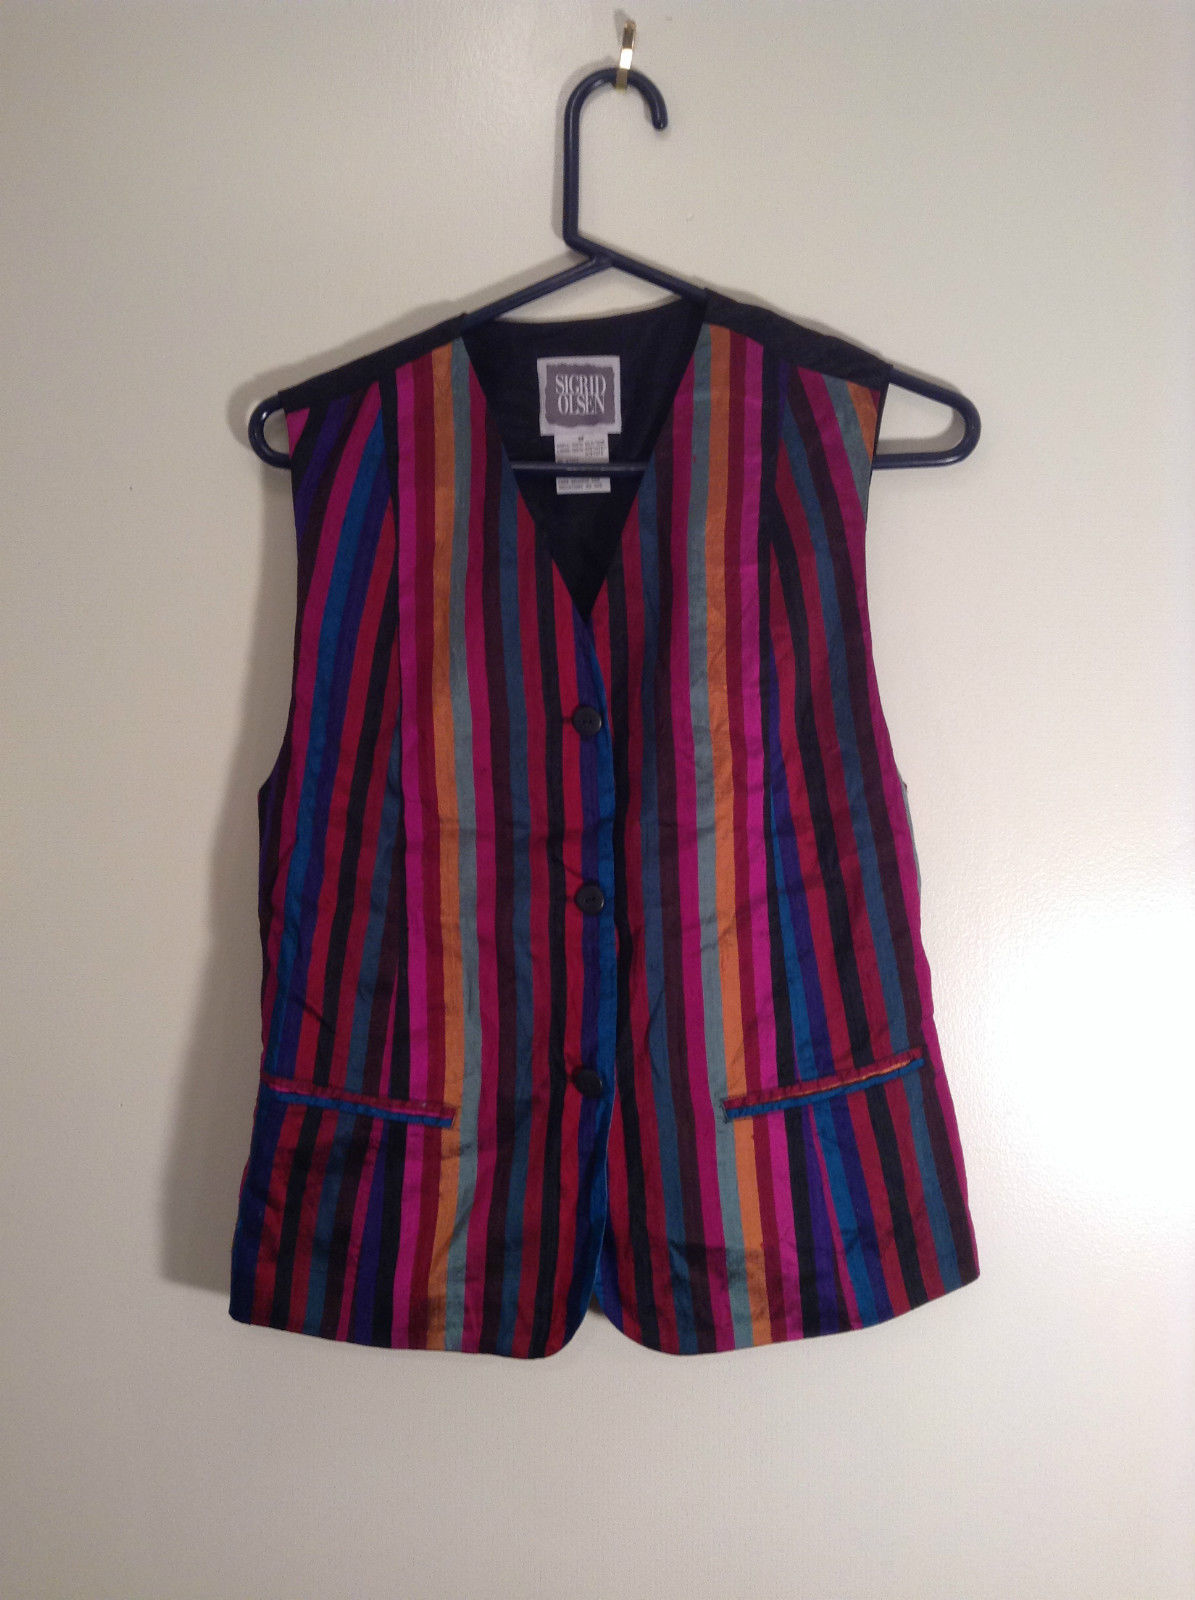 Sigrid Olsen Striped Red Orange Blue Black Short Sleeve Lined Vest Size M